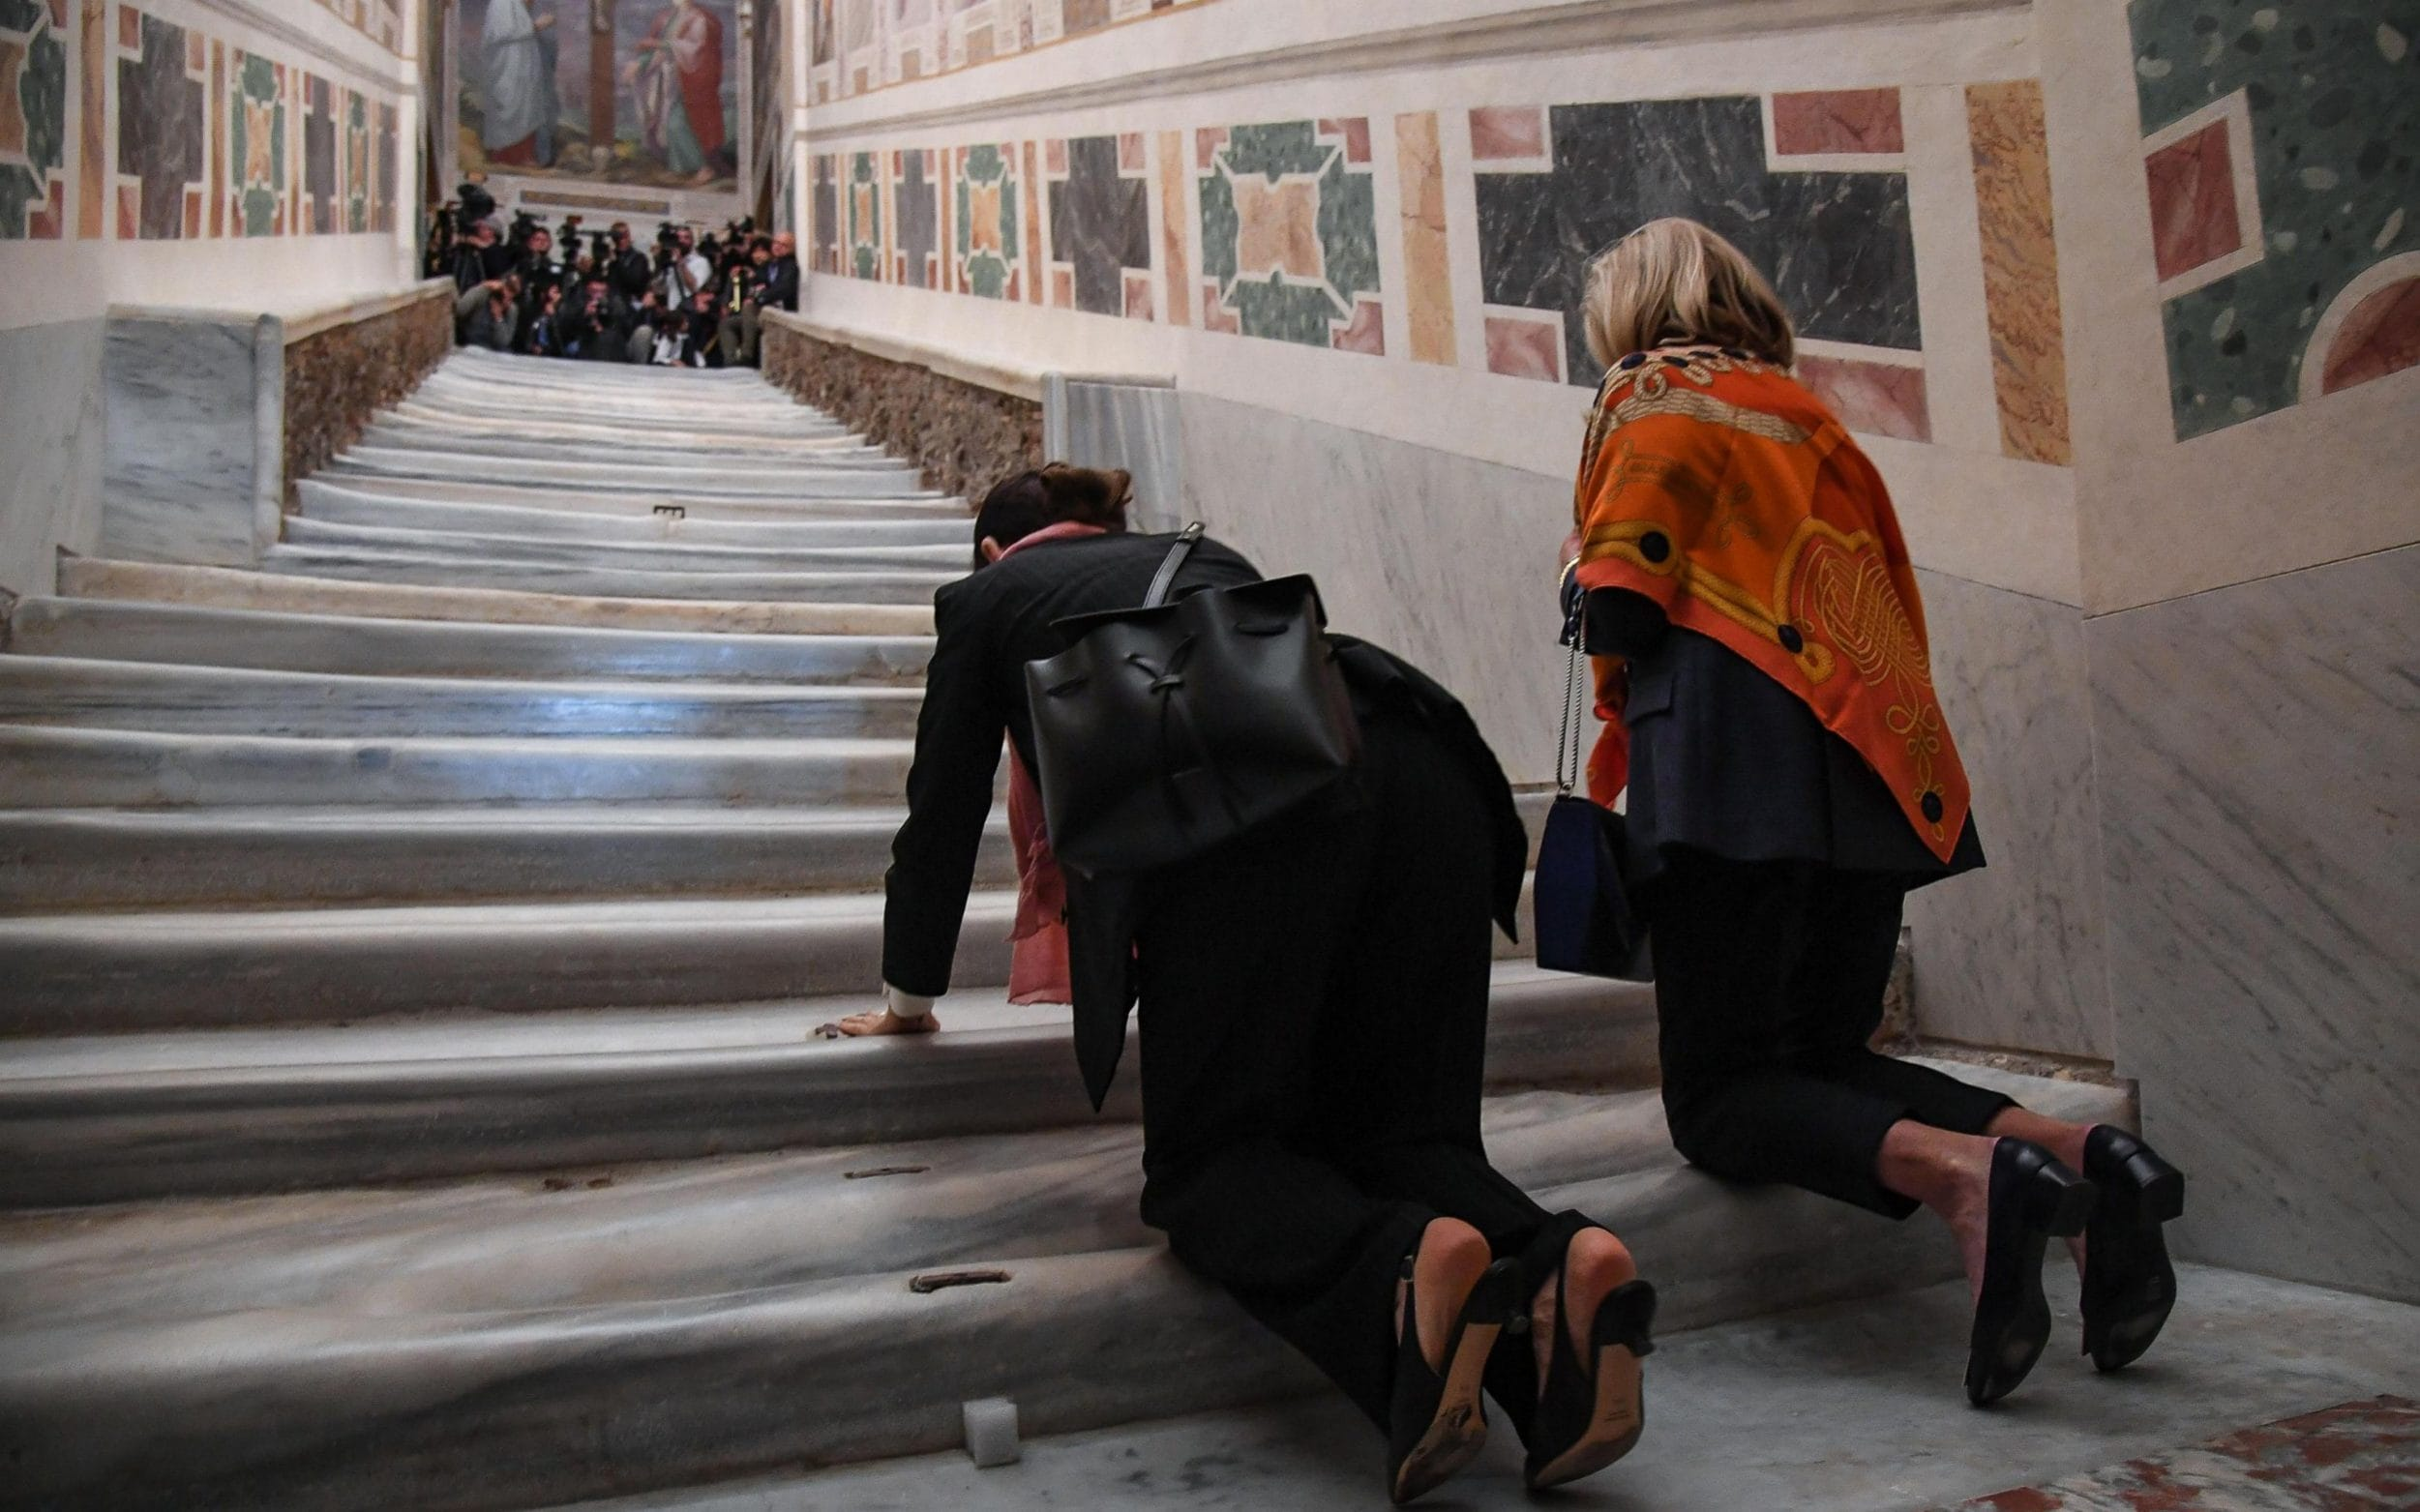 Catholic devotees climbed the newly restored staircase on their knees in a traditional act of penitence and devotion